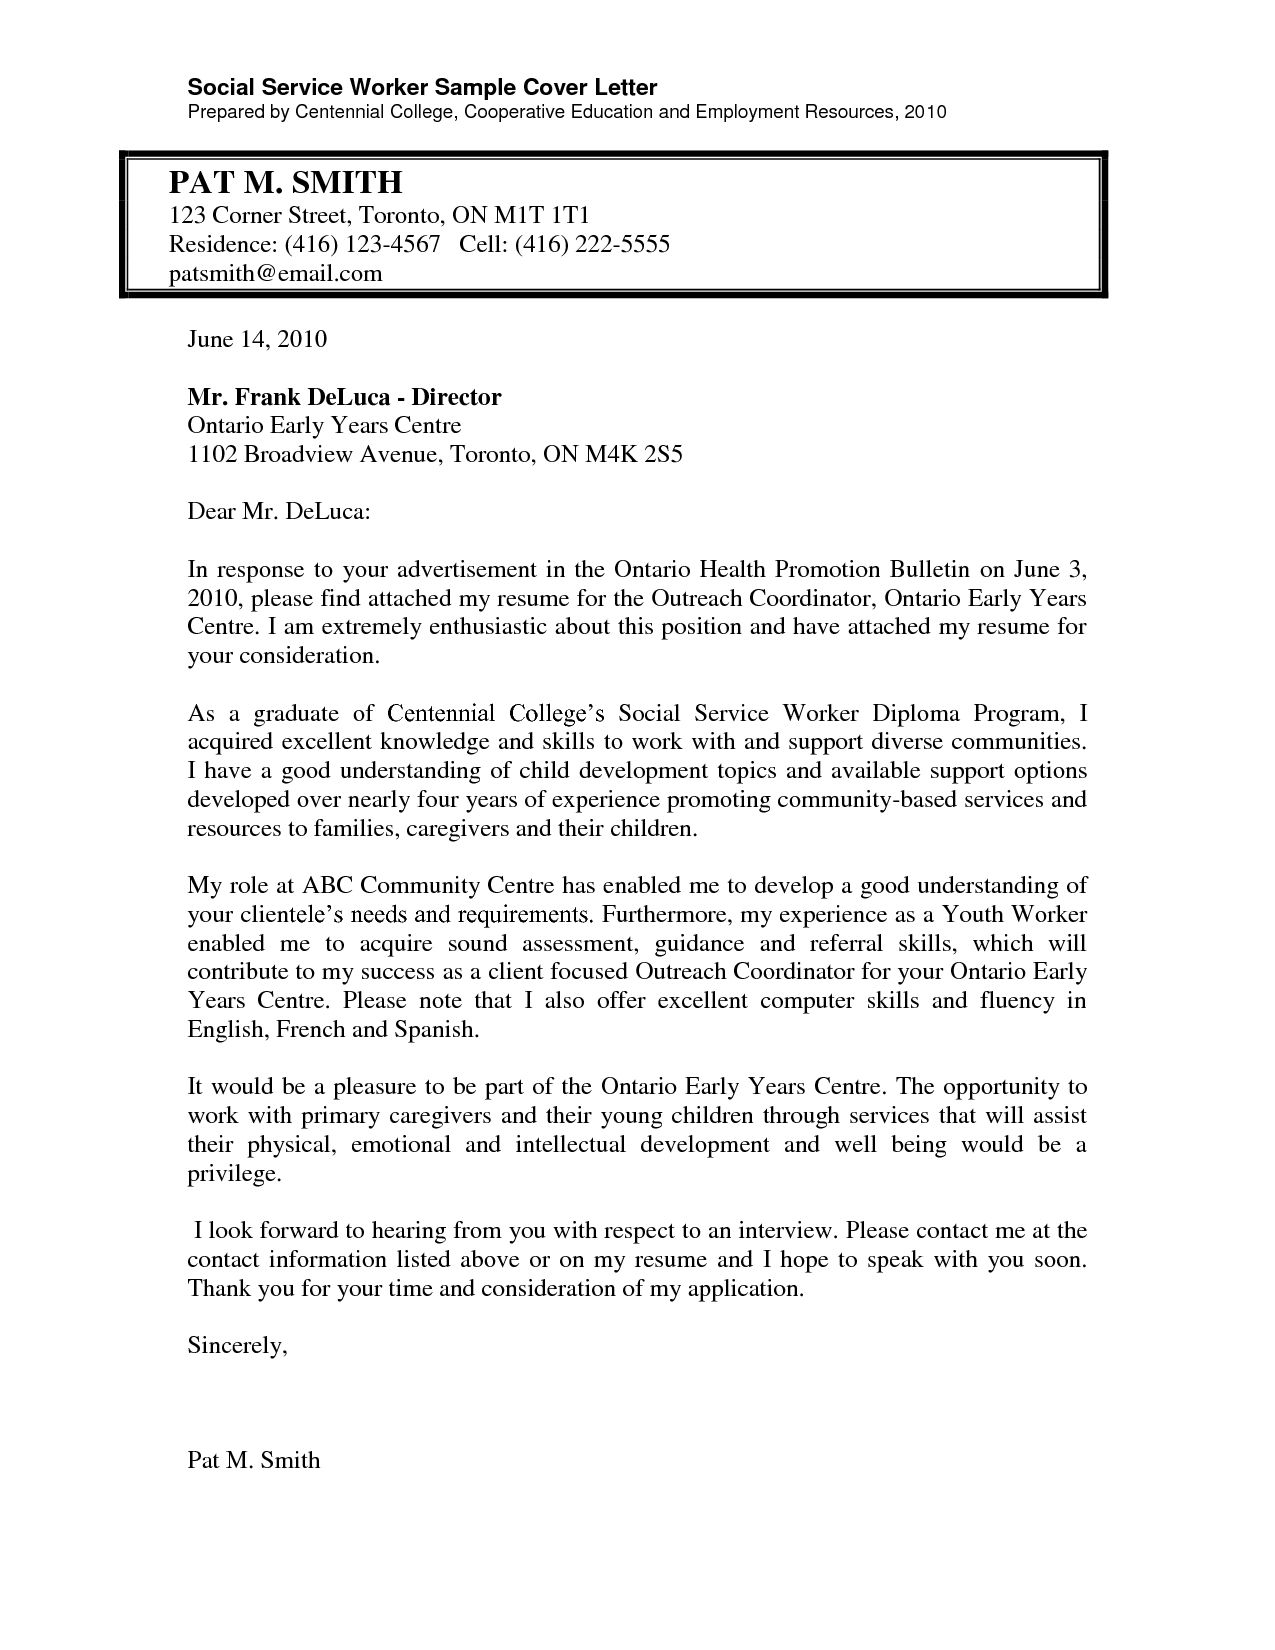 social work cover letter for resume teacher examples and services toronto superintendent Resume Resume And Cover Letter Services Toronto